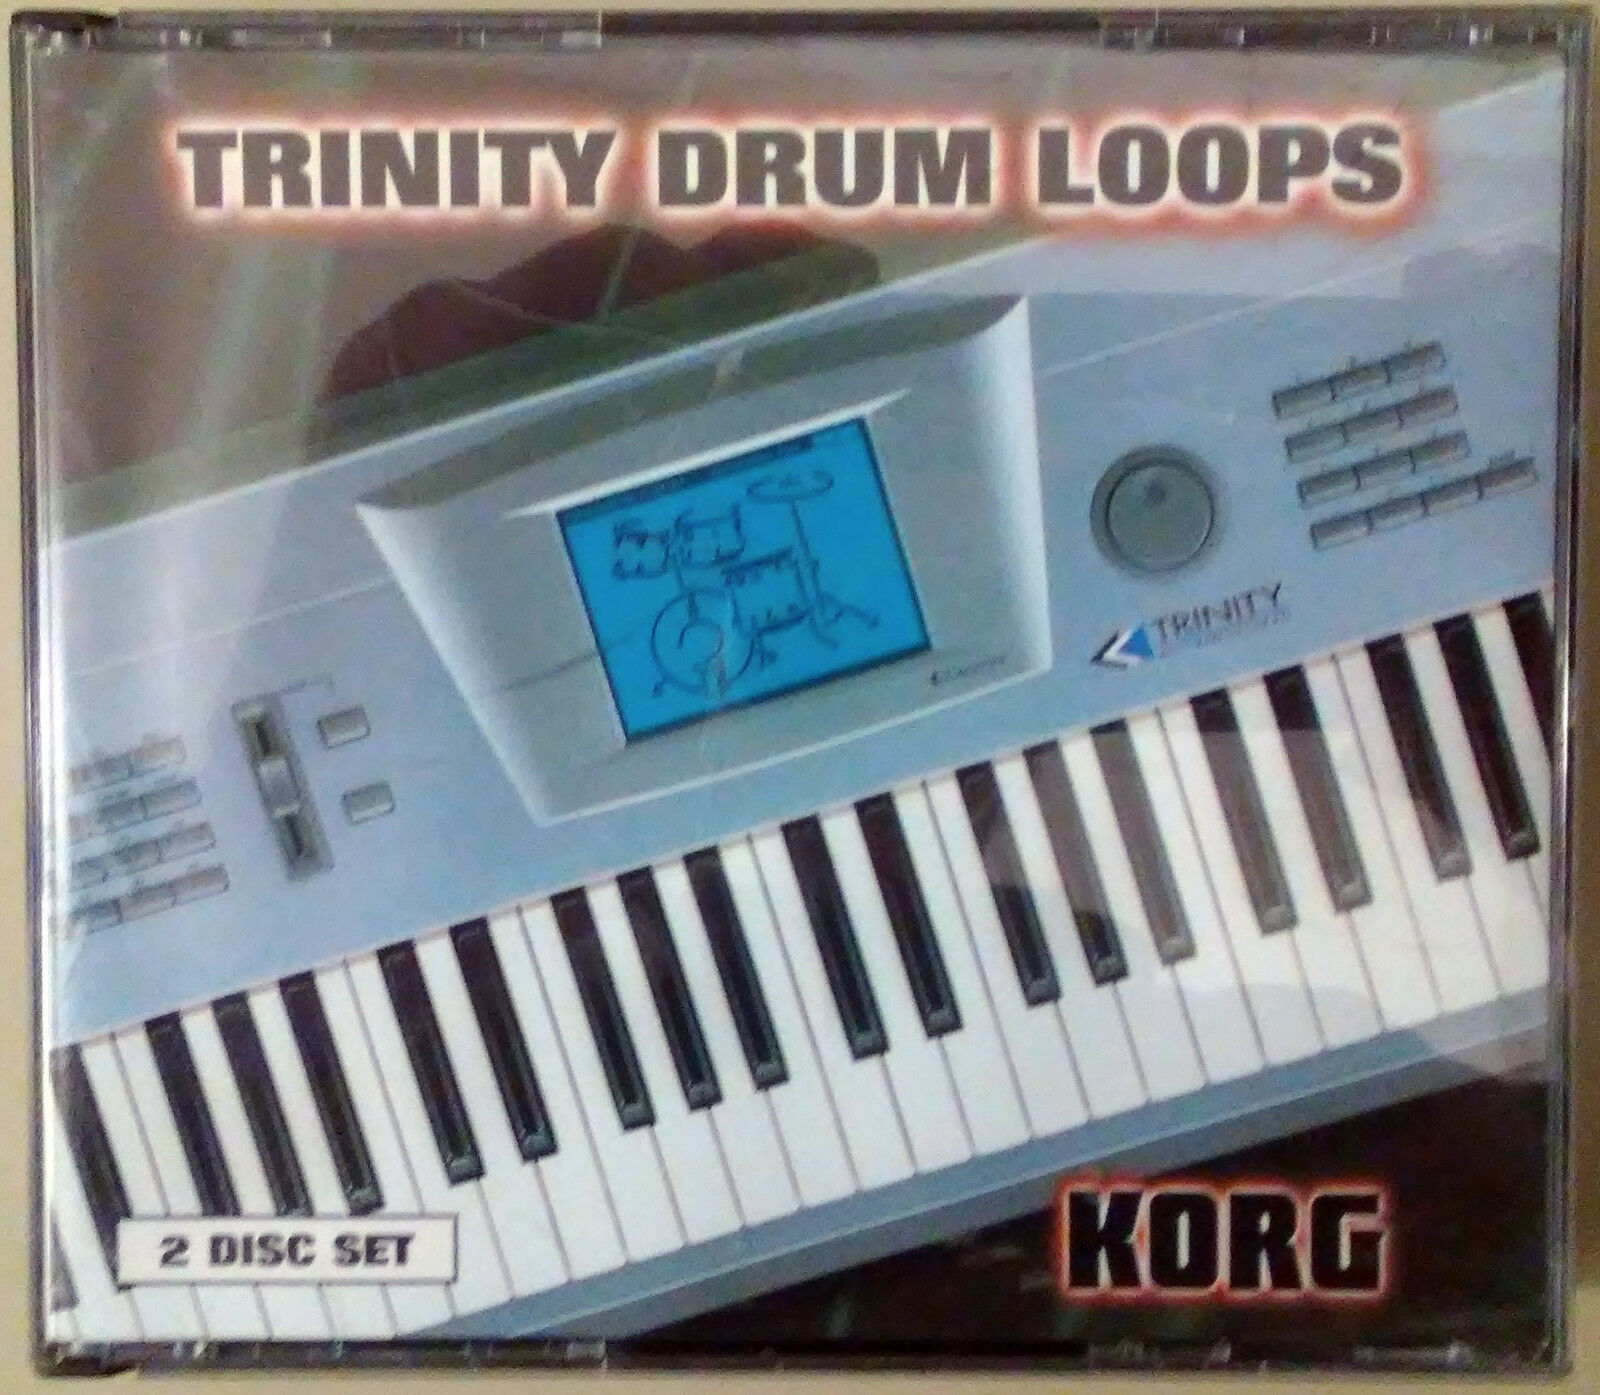 Korg Trinity Drum Loops 2 Disc Set - Rare